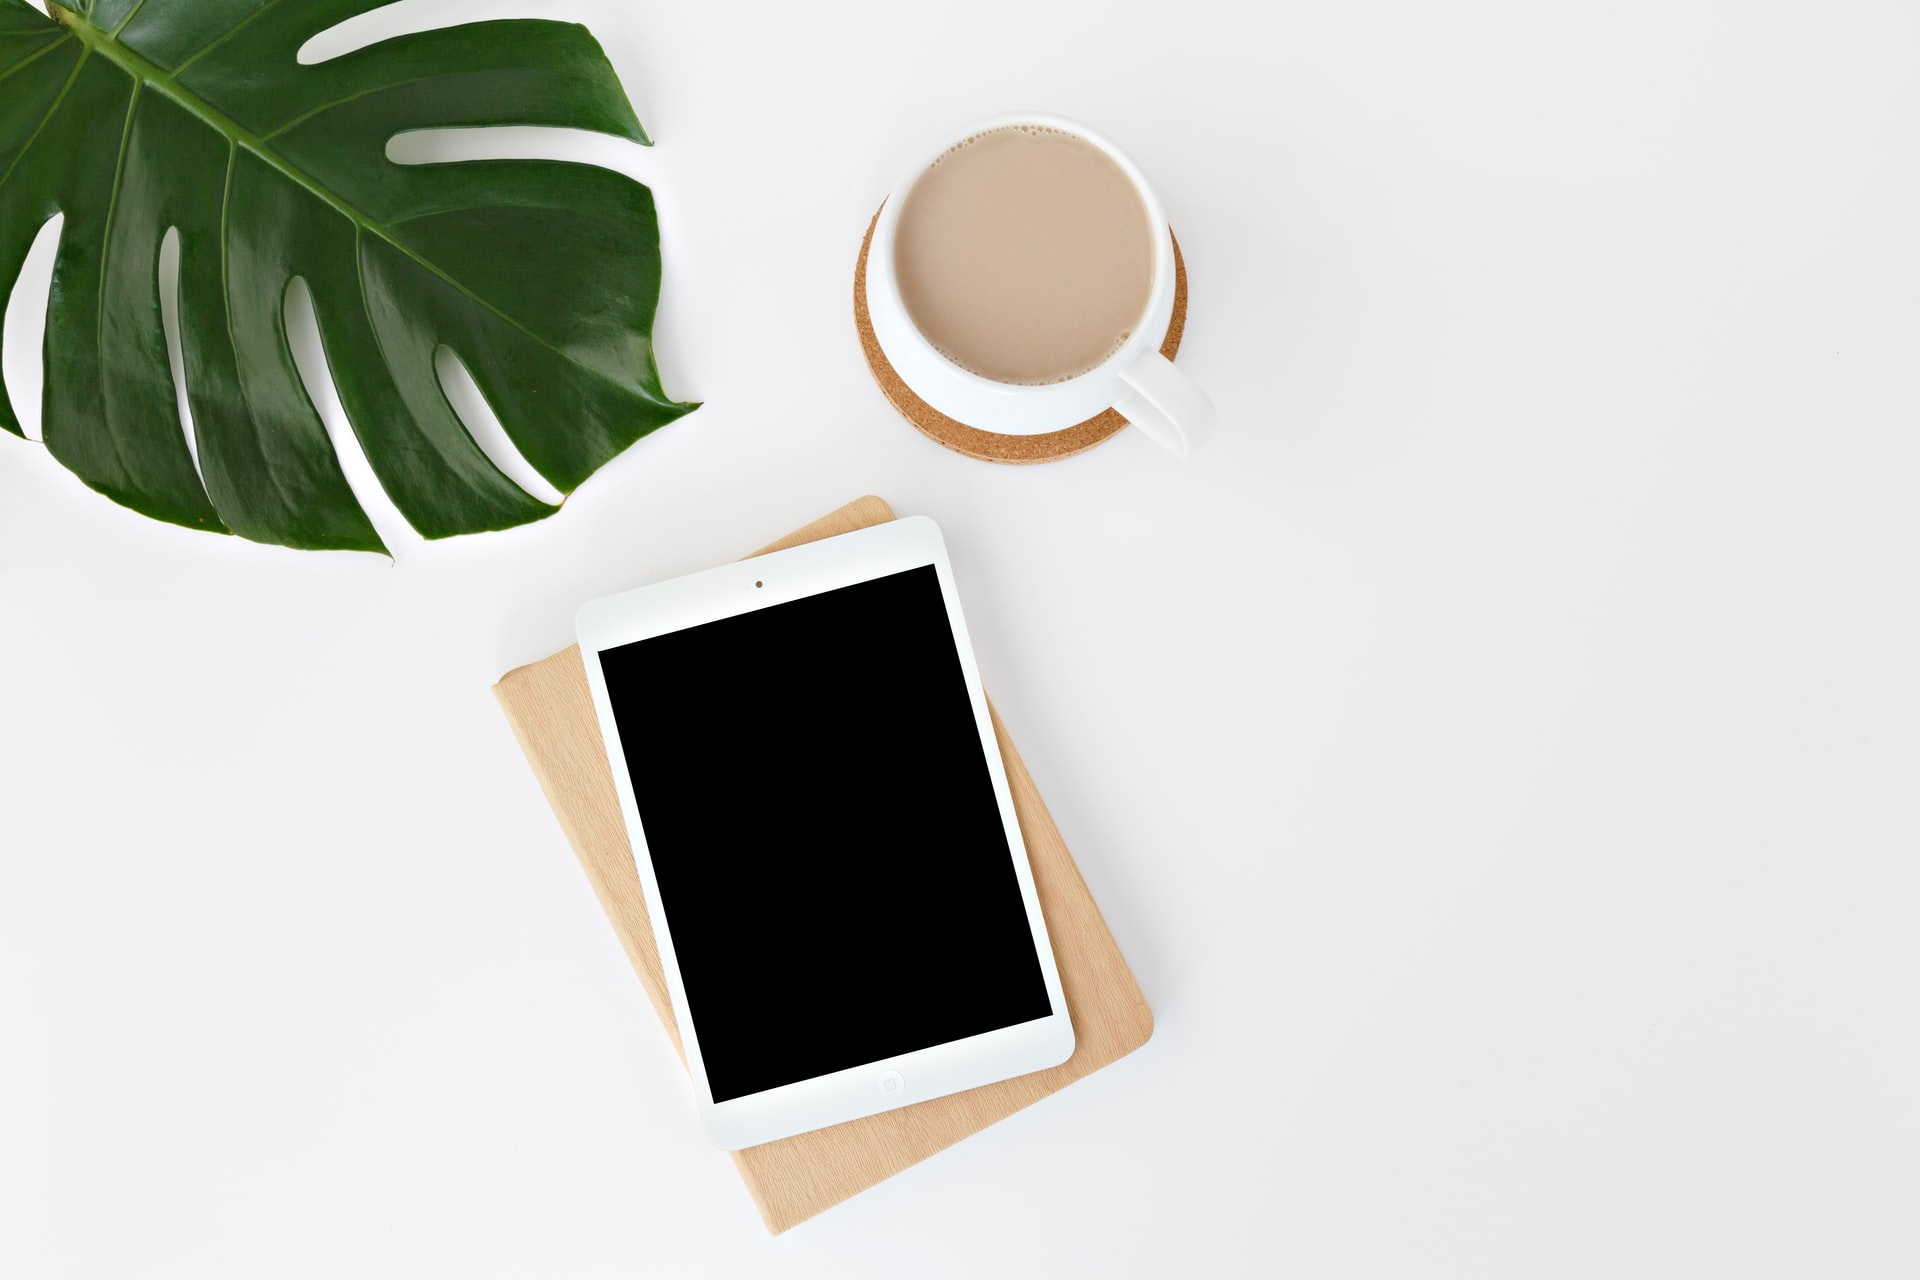 iPad, coffee and a plant on a table